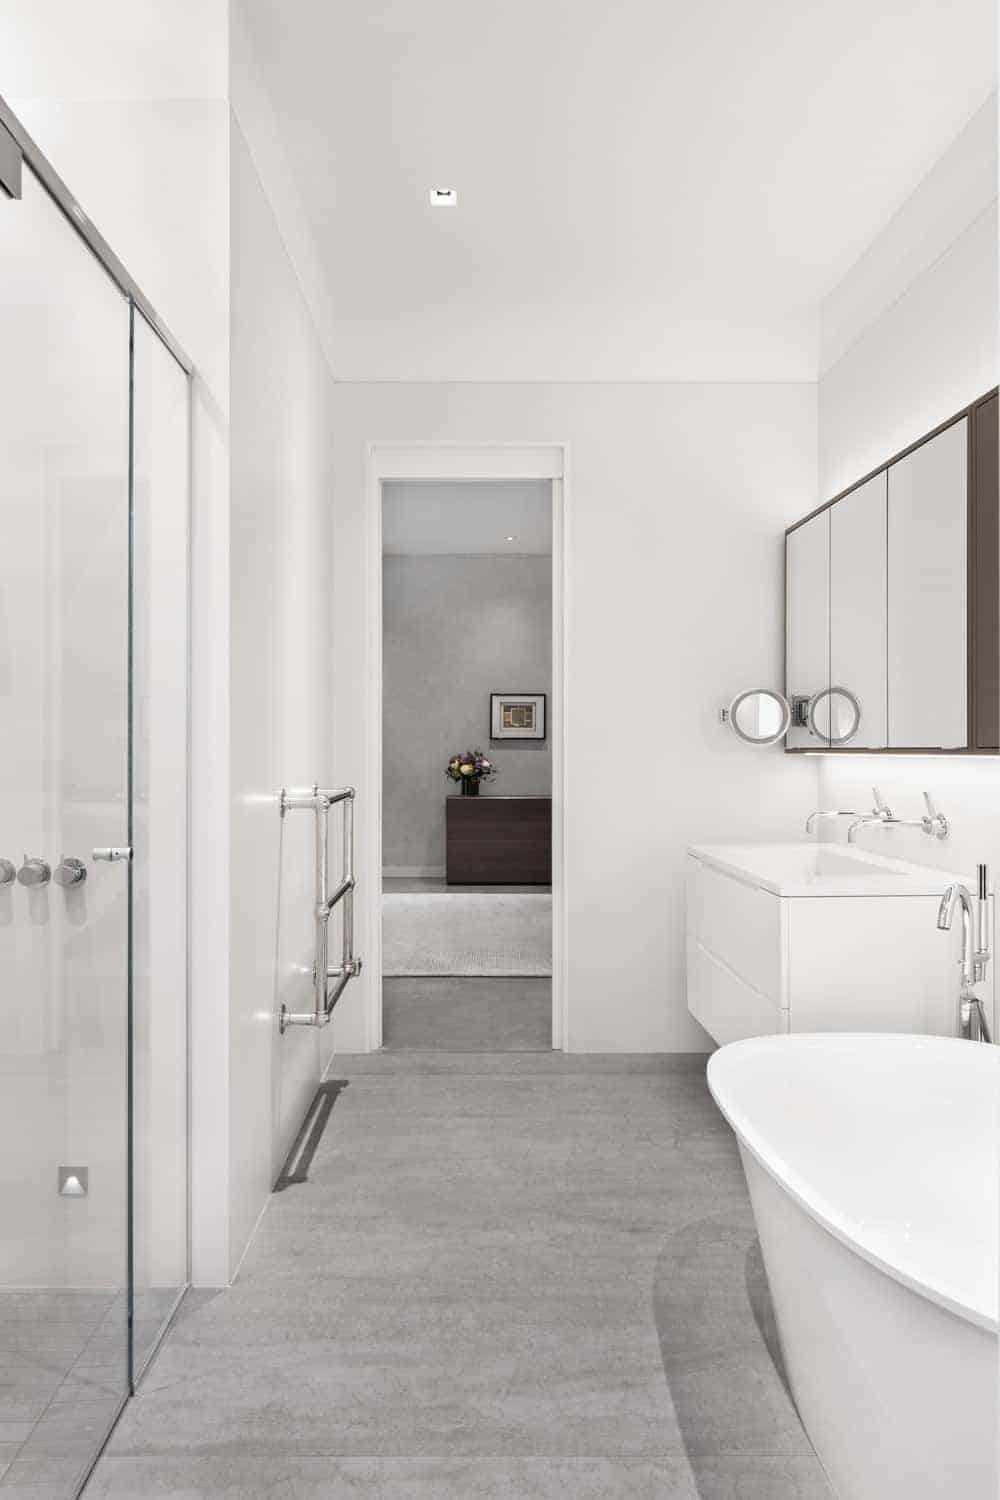 Open plan bathroom offers a walk-in shower and freestanding tub next to the floating sink vanity with chrome faucets and medicine cabinet.